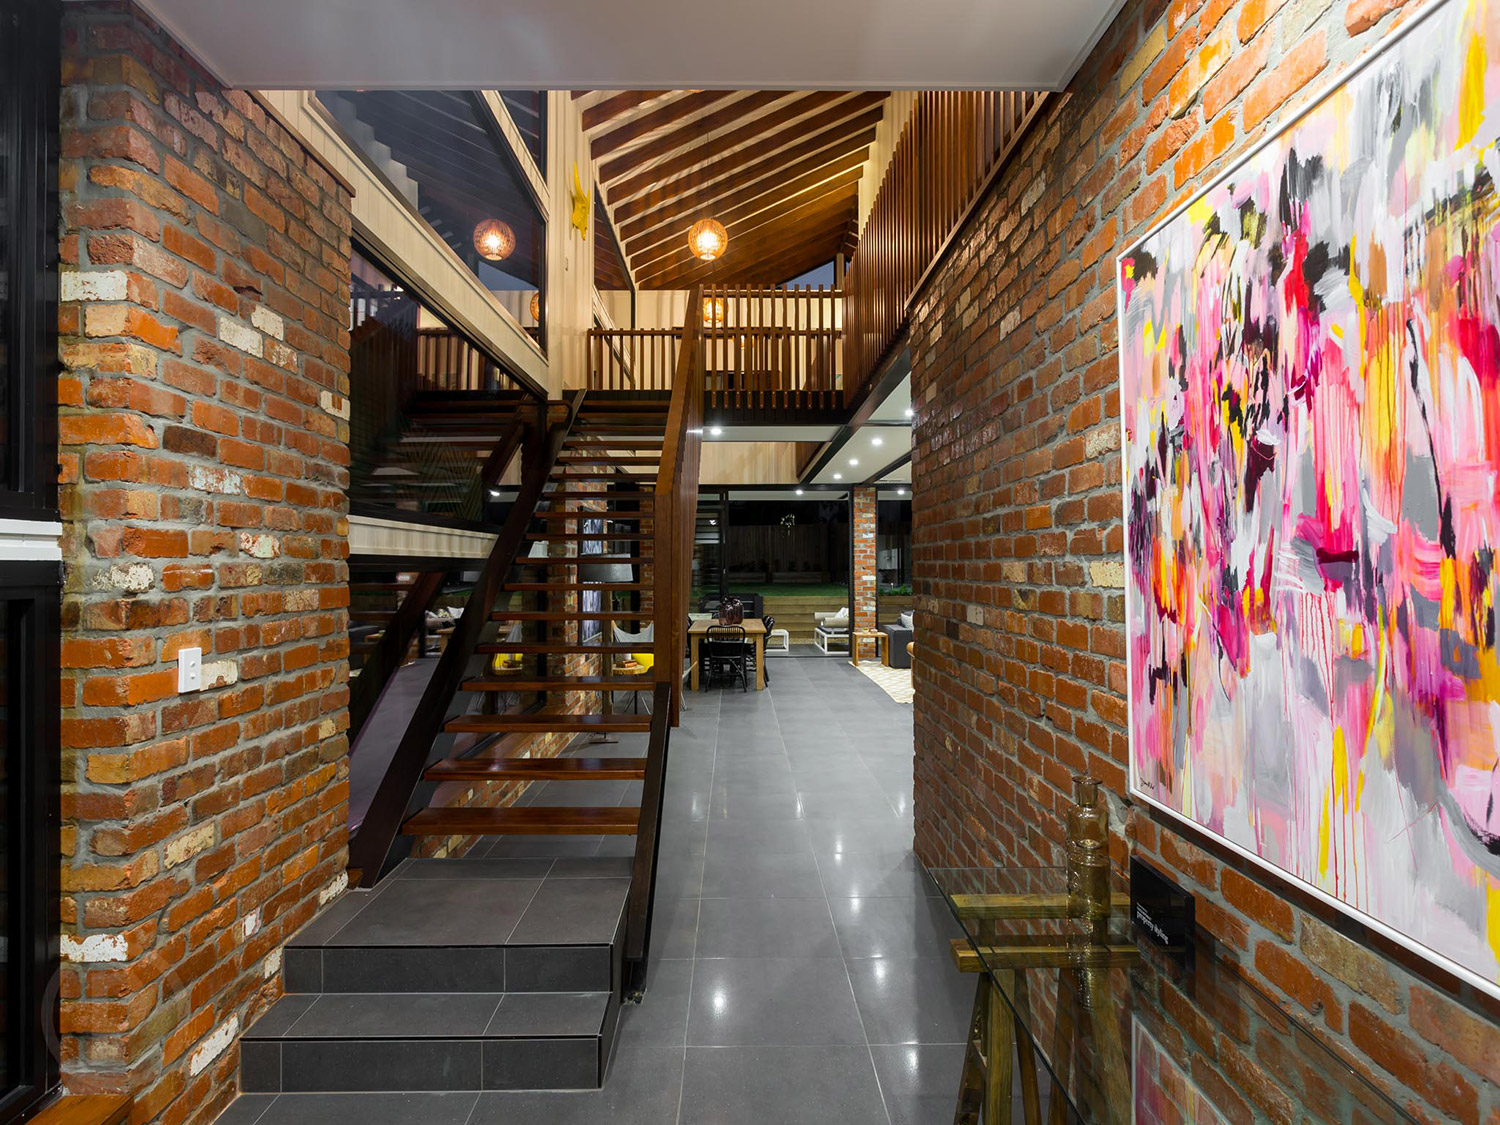 """This contemporary abstract painting """"Pump up the Jam"""" from my 80s themed exhibition in 2014 makes a bold statement against the 100 year old recycled bricks in this home built by my husband Todd of  ZieglerBuild  and styled by  Coco Republic ."""